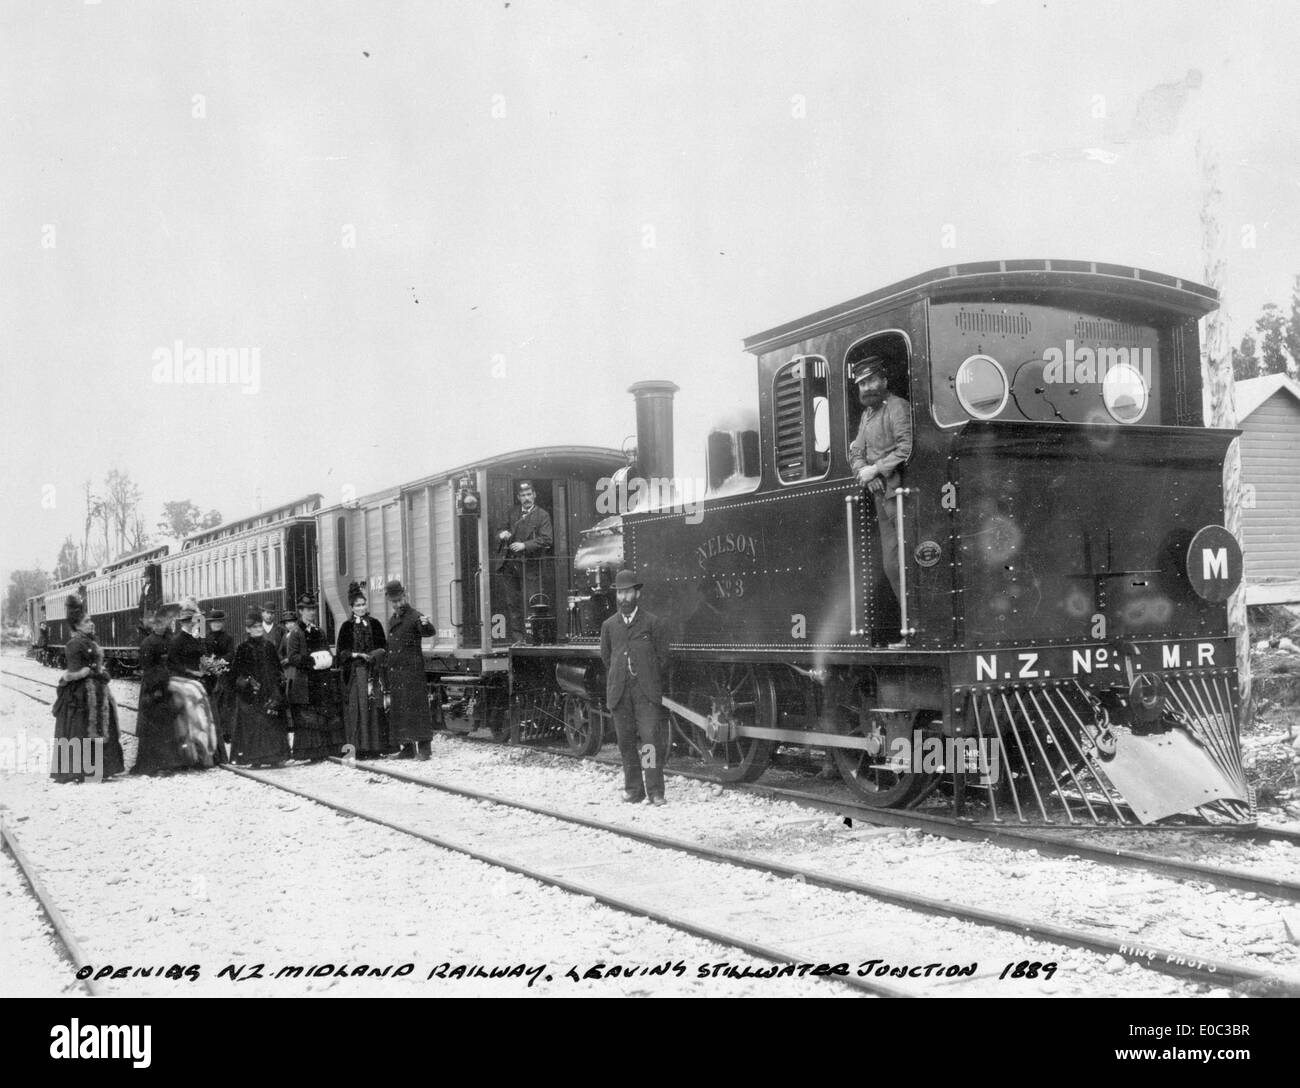 Opening of the Midland Railway, Stillwater junction, 1889 - Stock Image